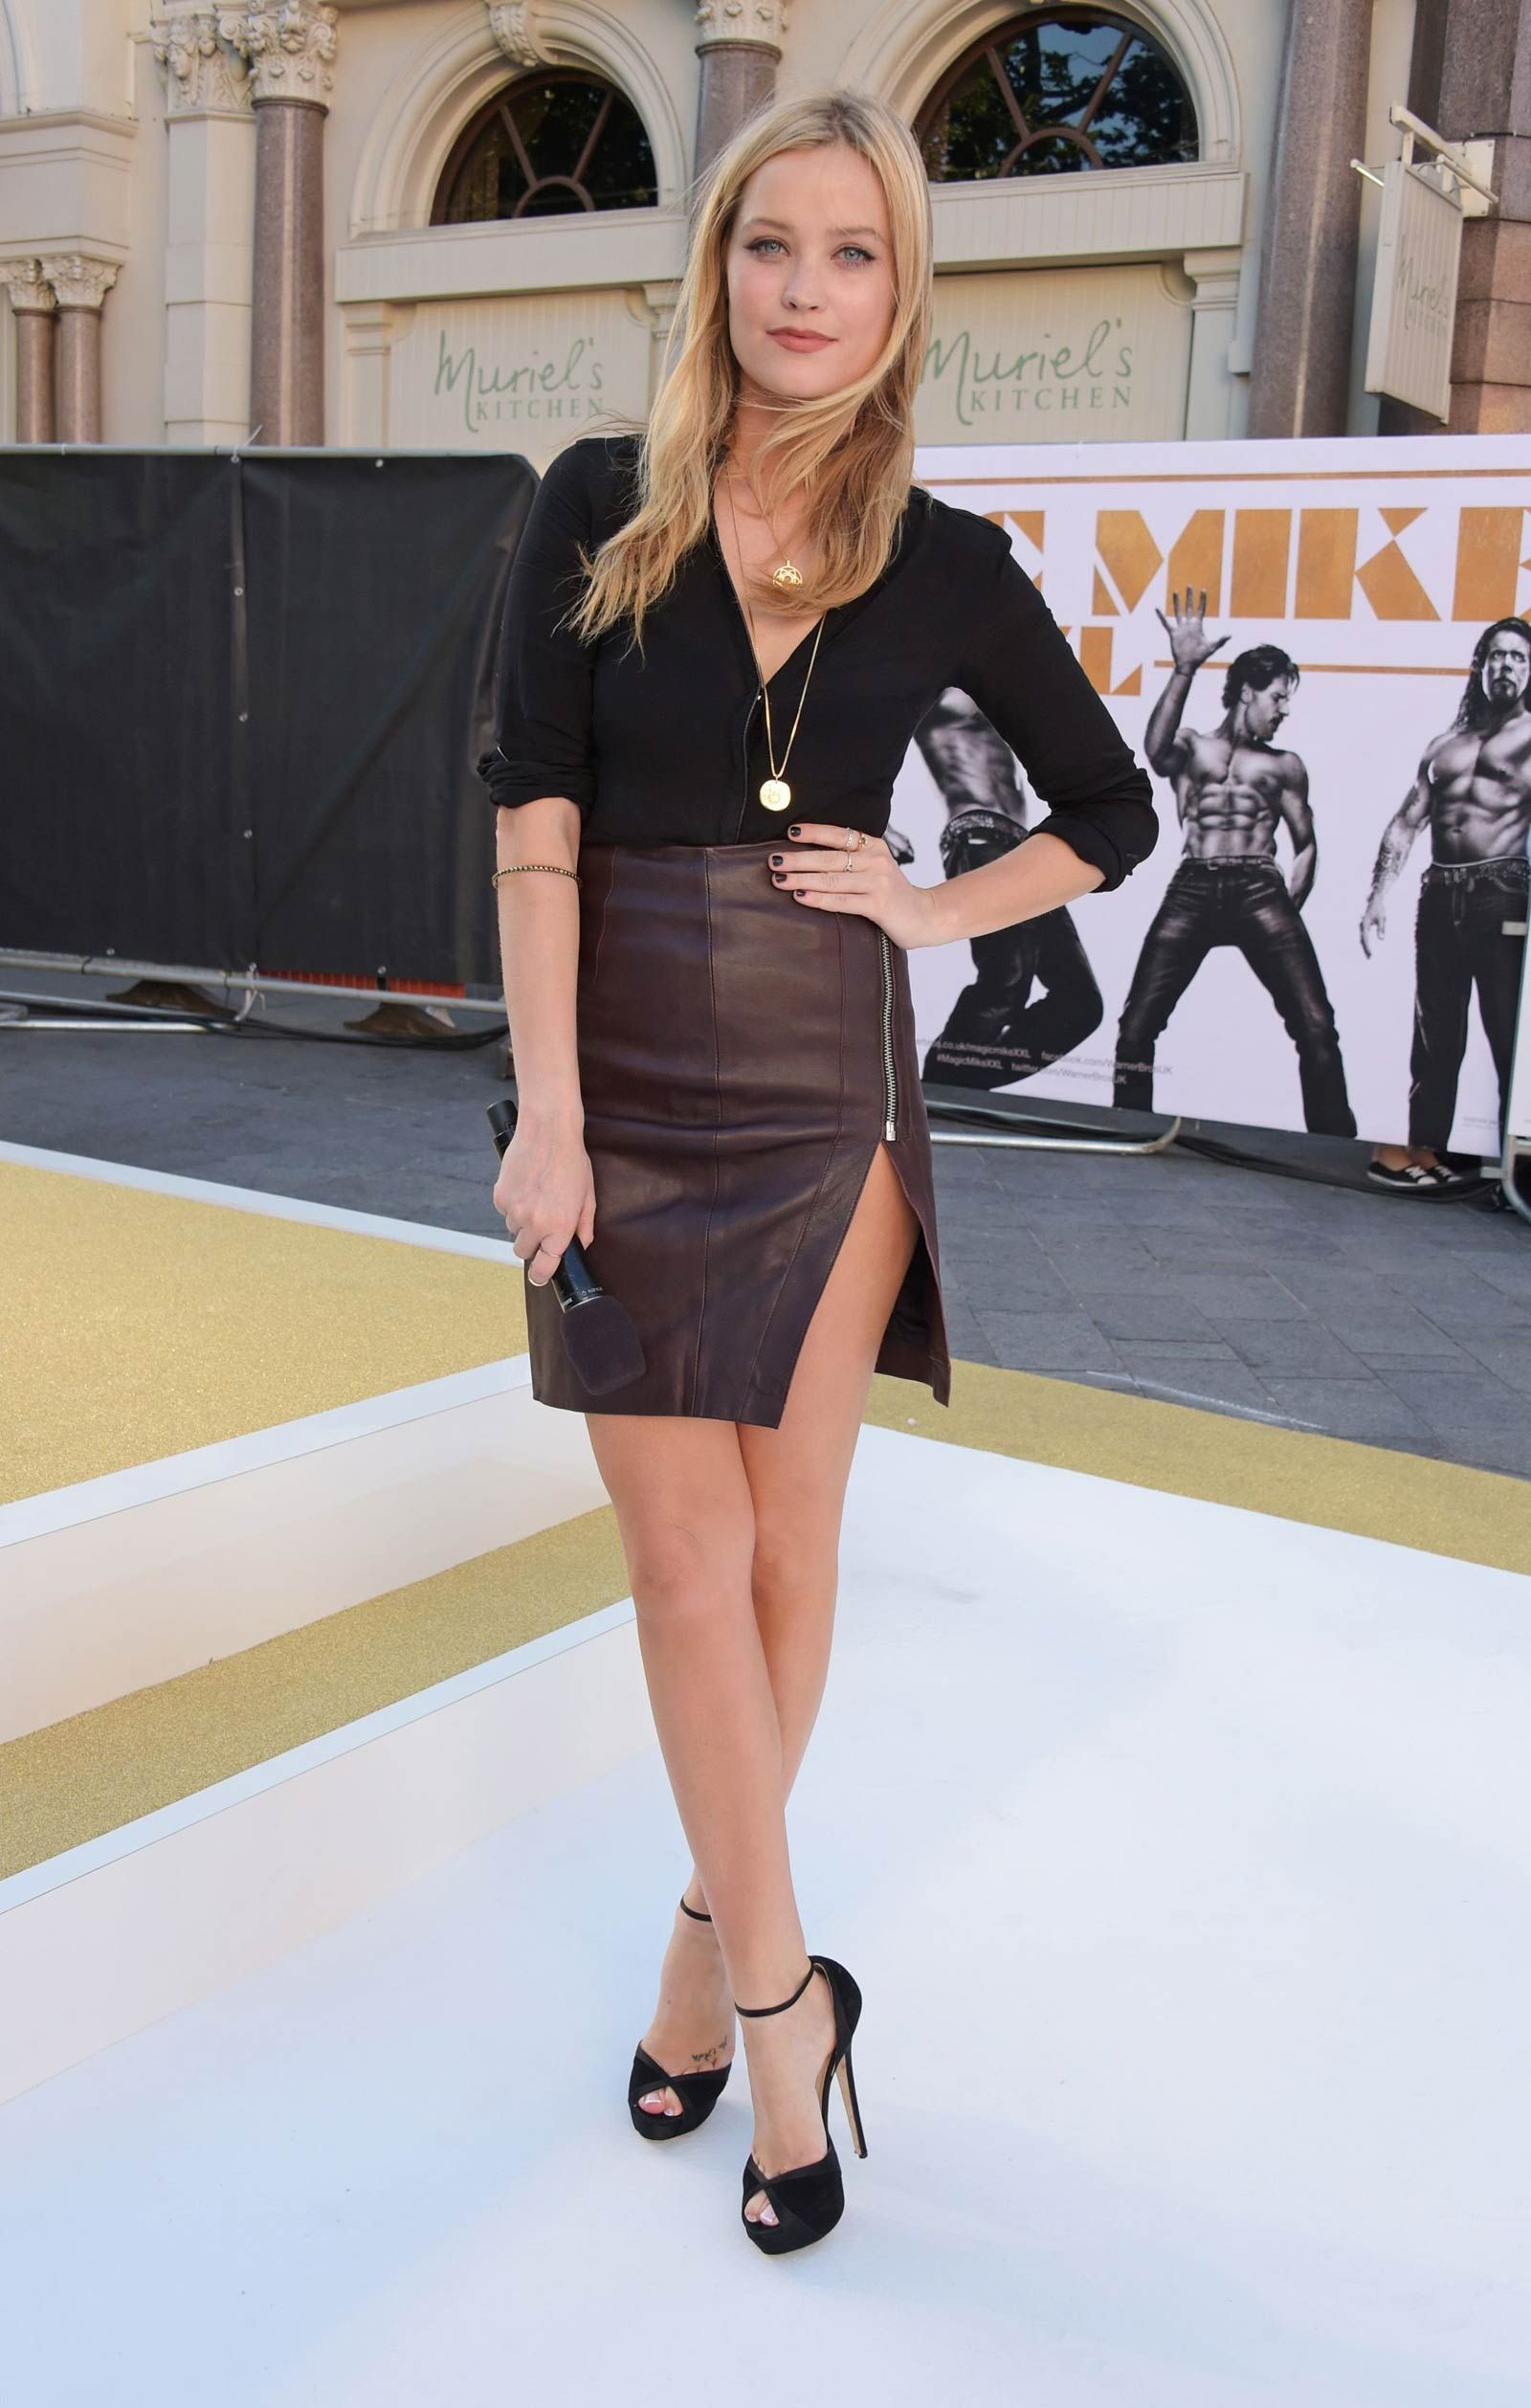 Paparazzi Laura Whitmore nude (22 images), Feet